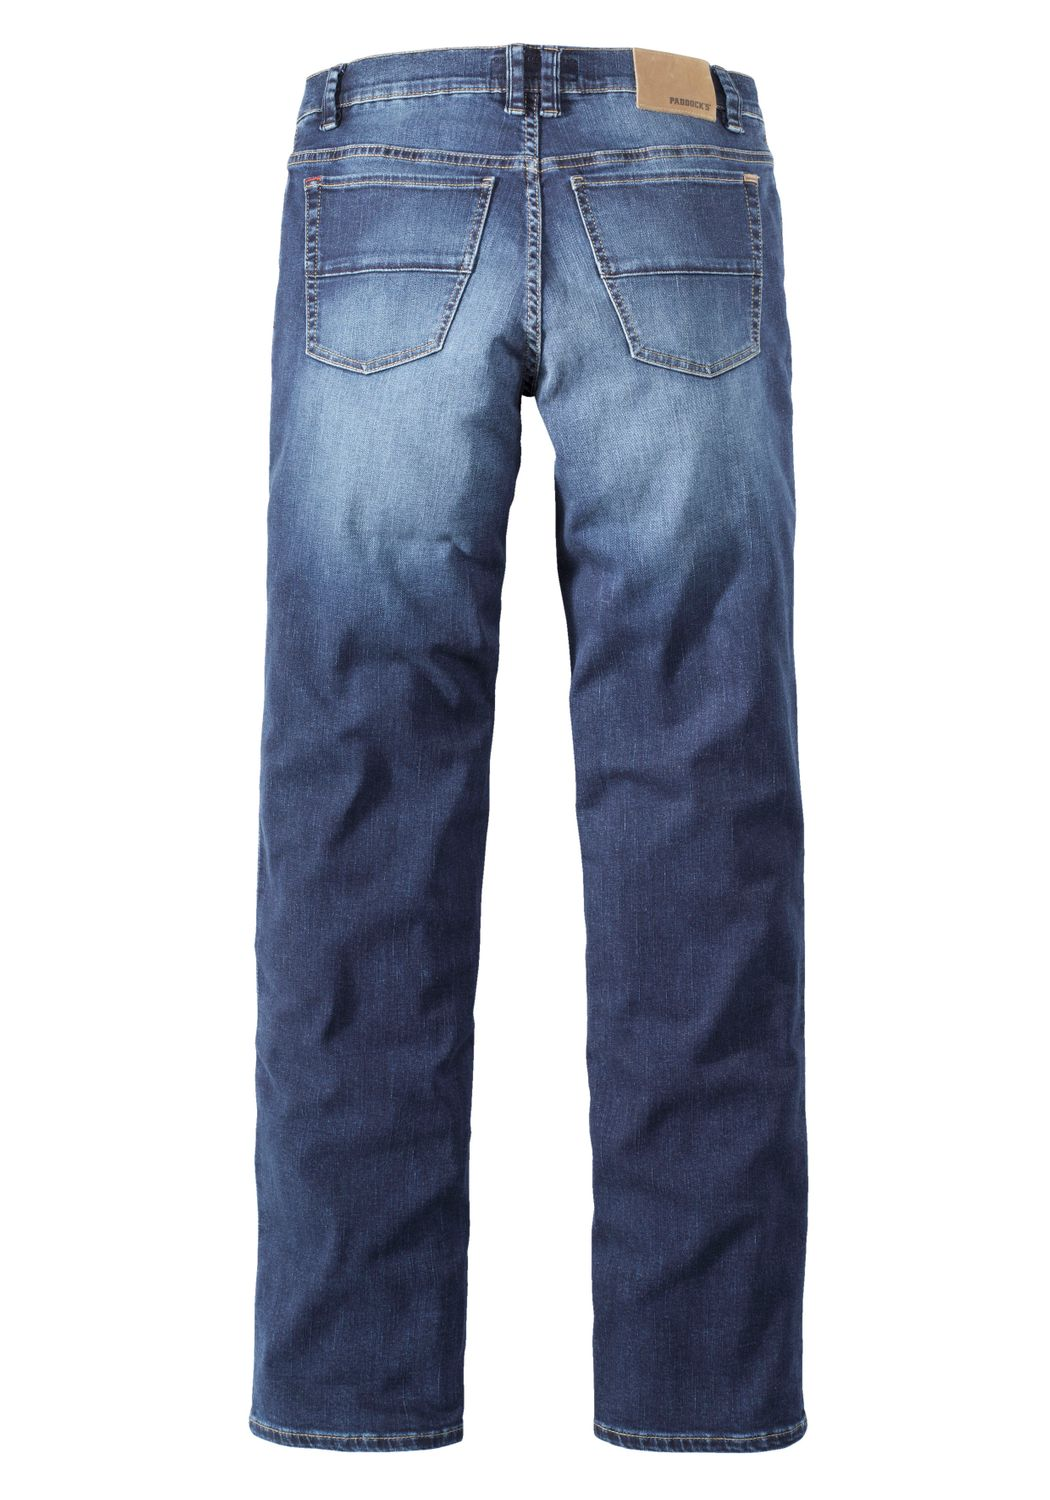 Paddock`s Herren Jeans Ranger - Slim Fit - Blau - Blue Dark Moustache Used